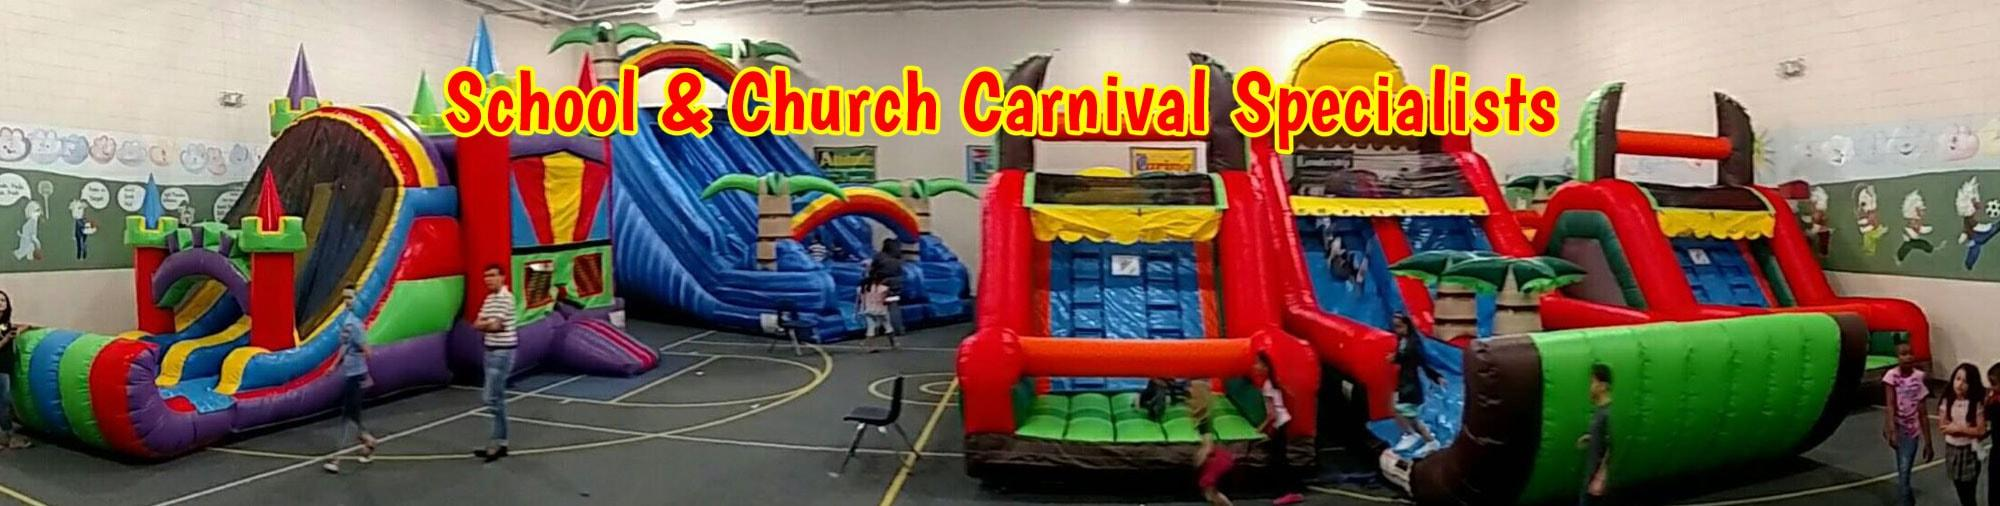 School & Church Carnival Rentals